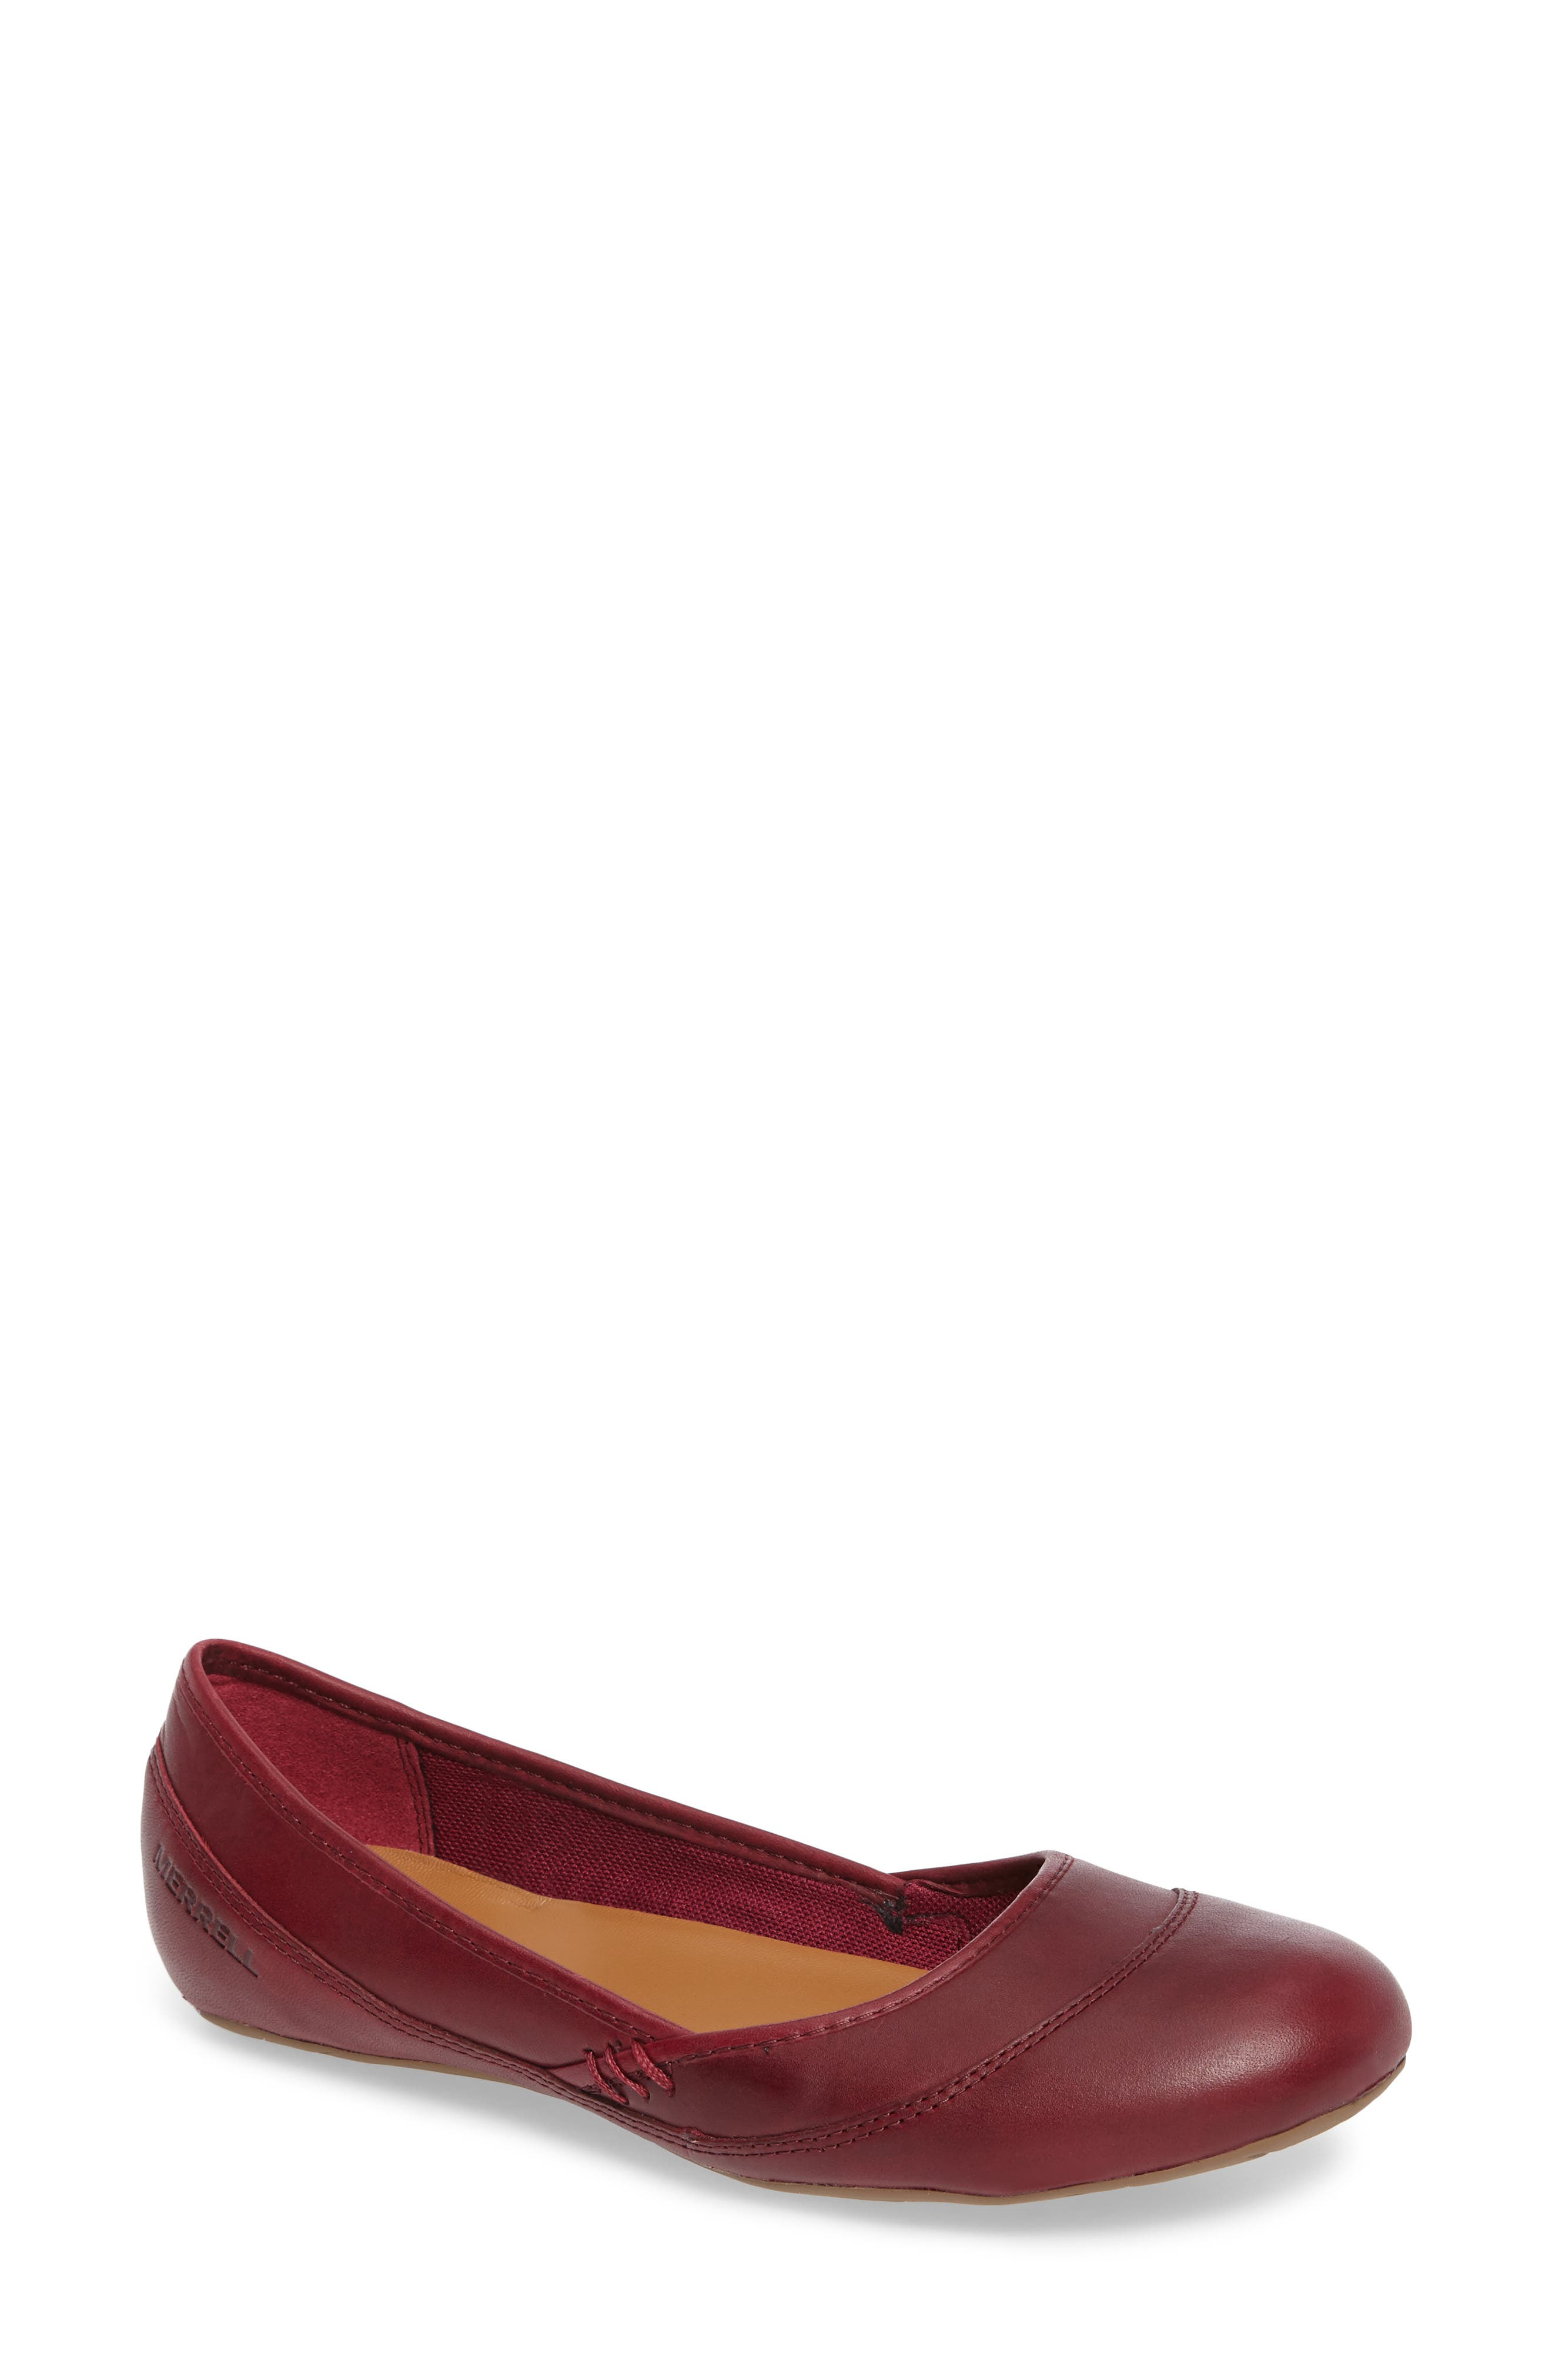 Ember Ballet Flat,                         Main,                         color, Beet Red Leather